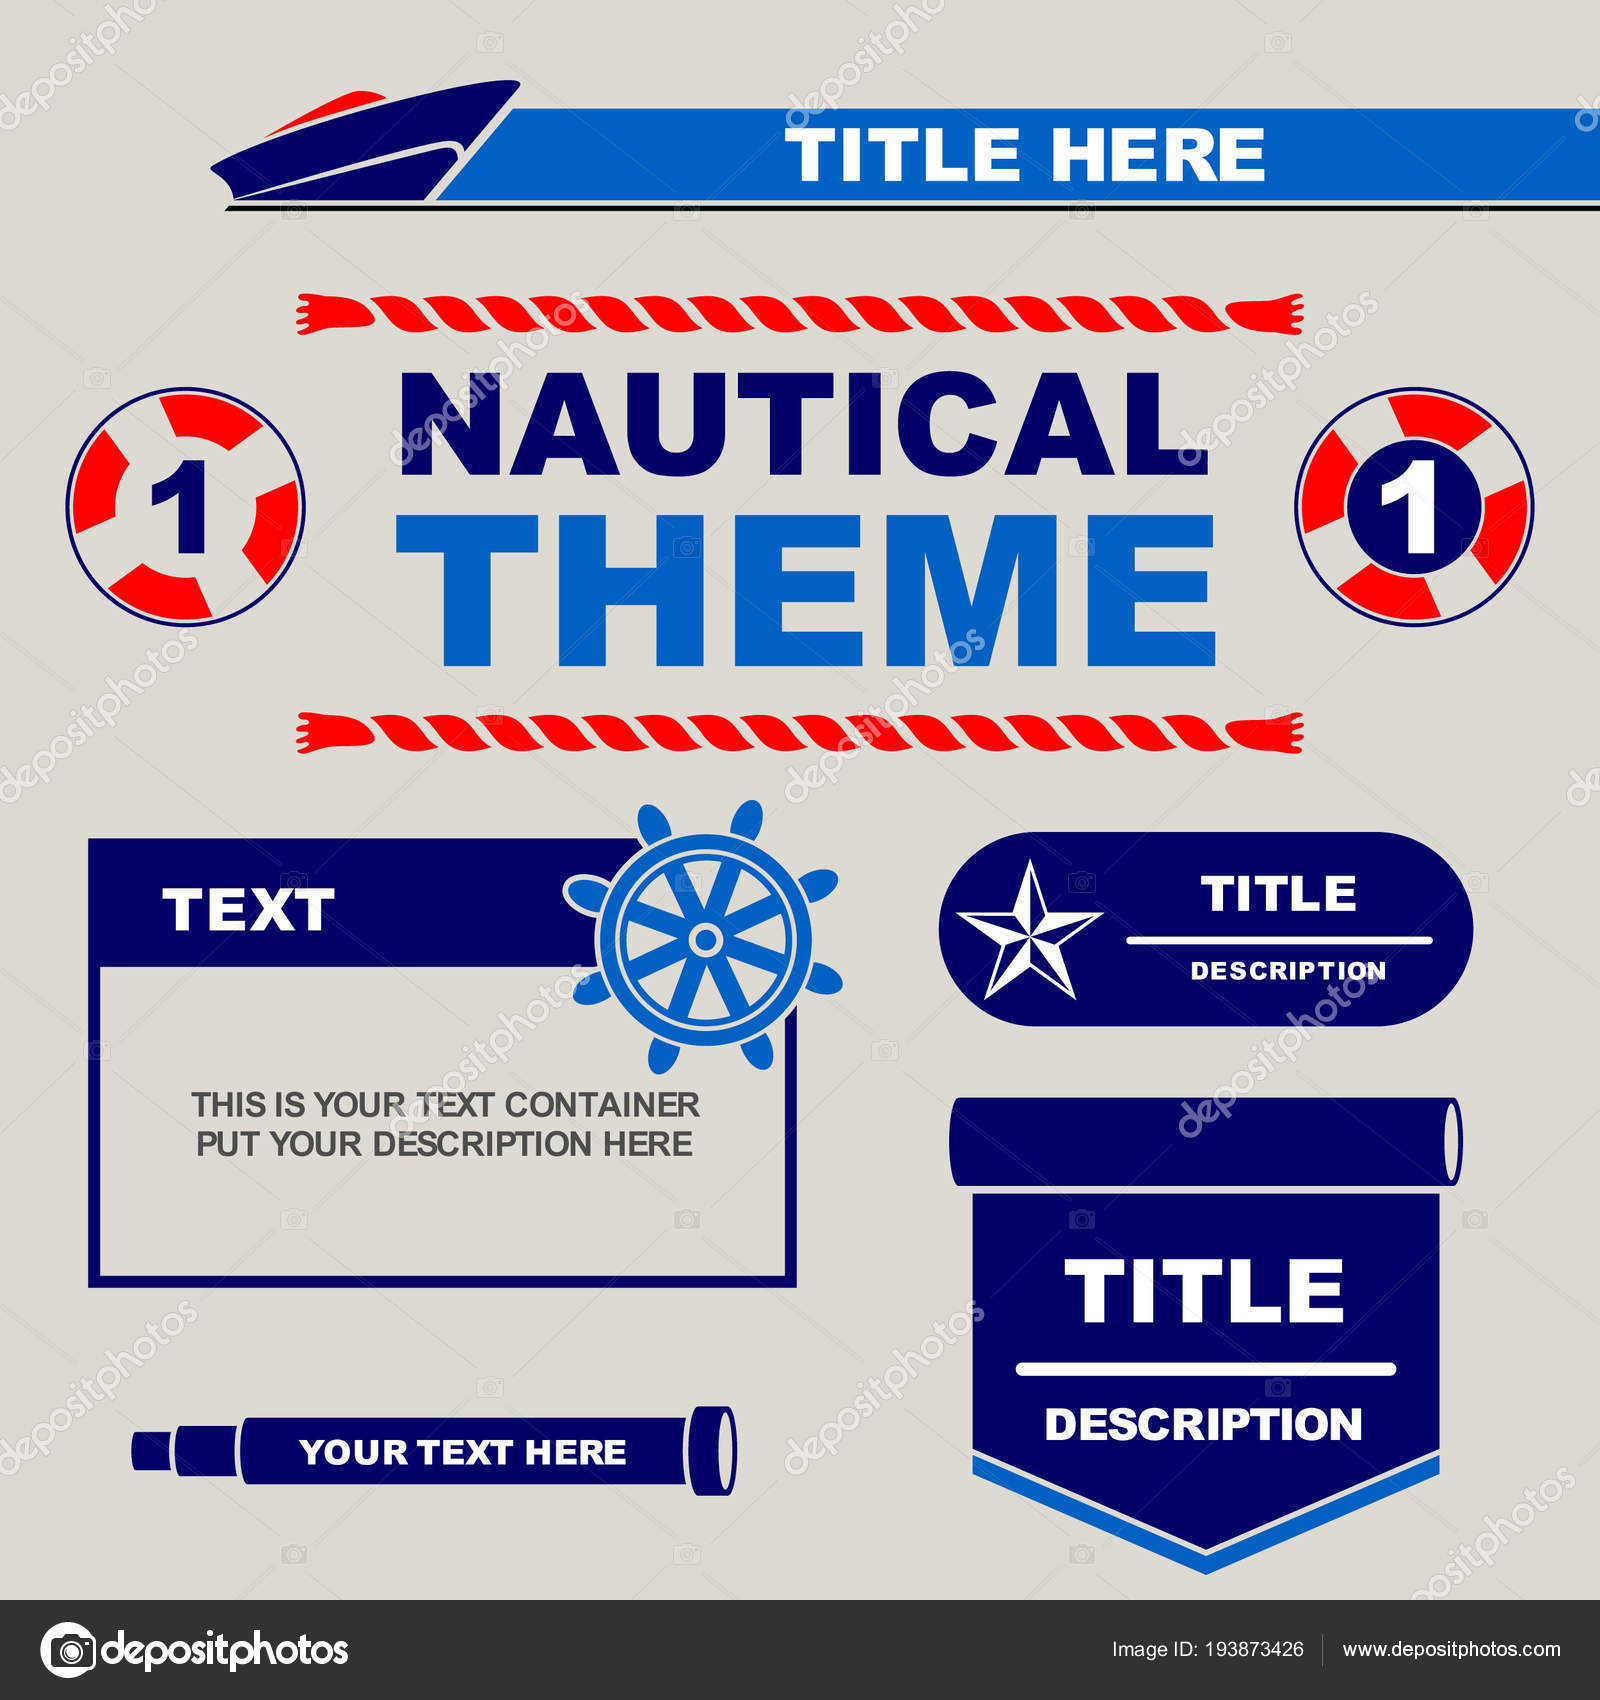 Nautical Theme Design Template You Can Use Flyers Banner Brochure ...